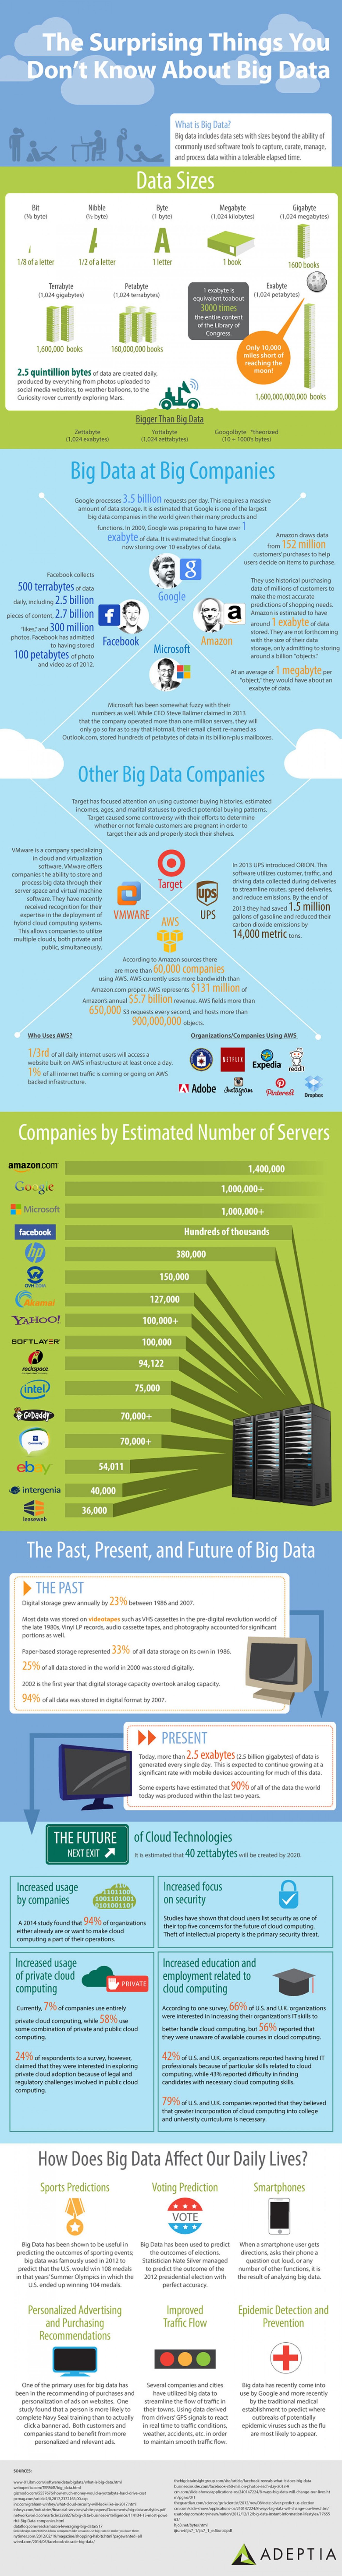 The Surprising Things You Don't Know About Big Data